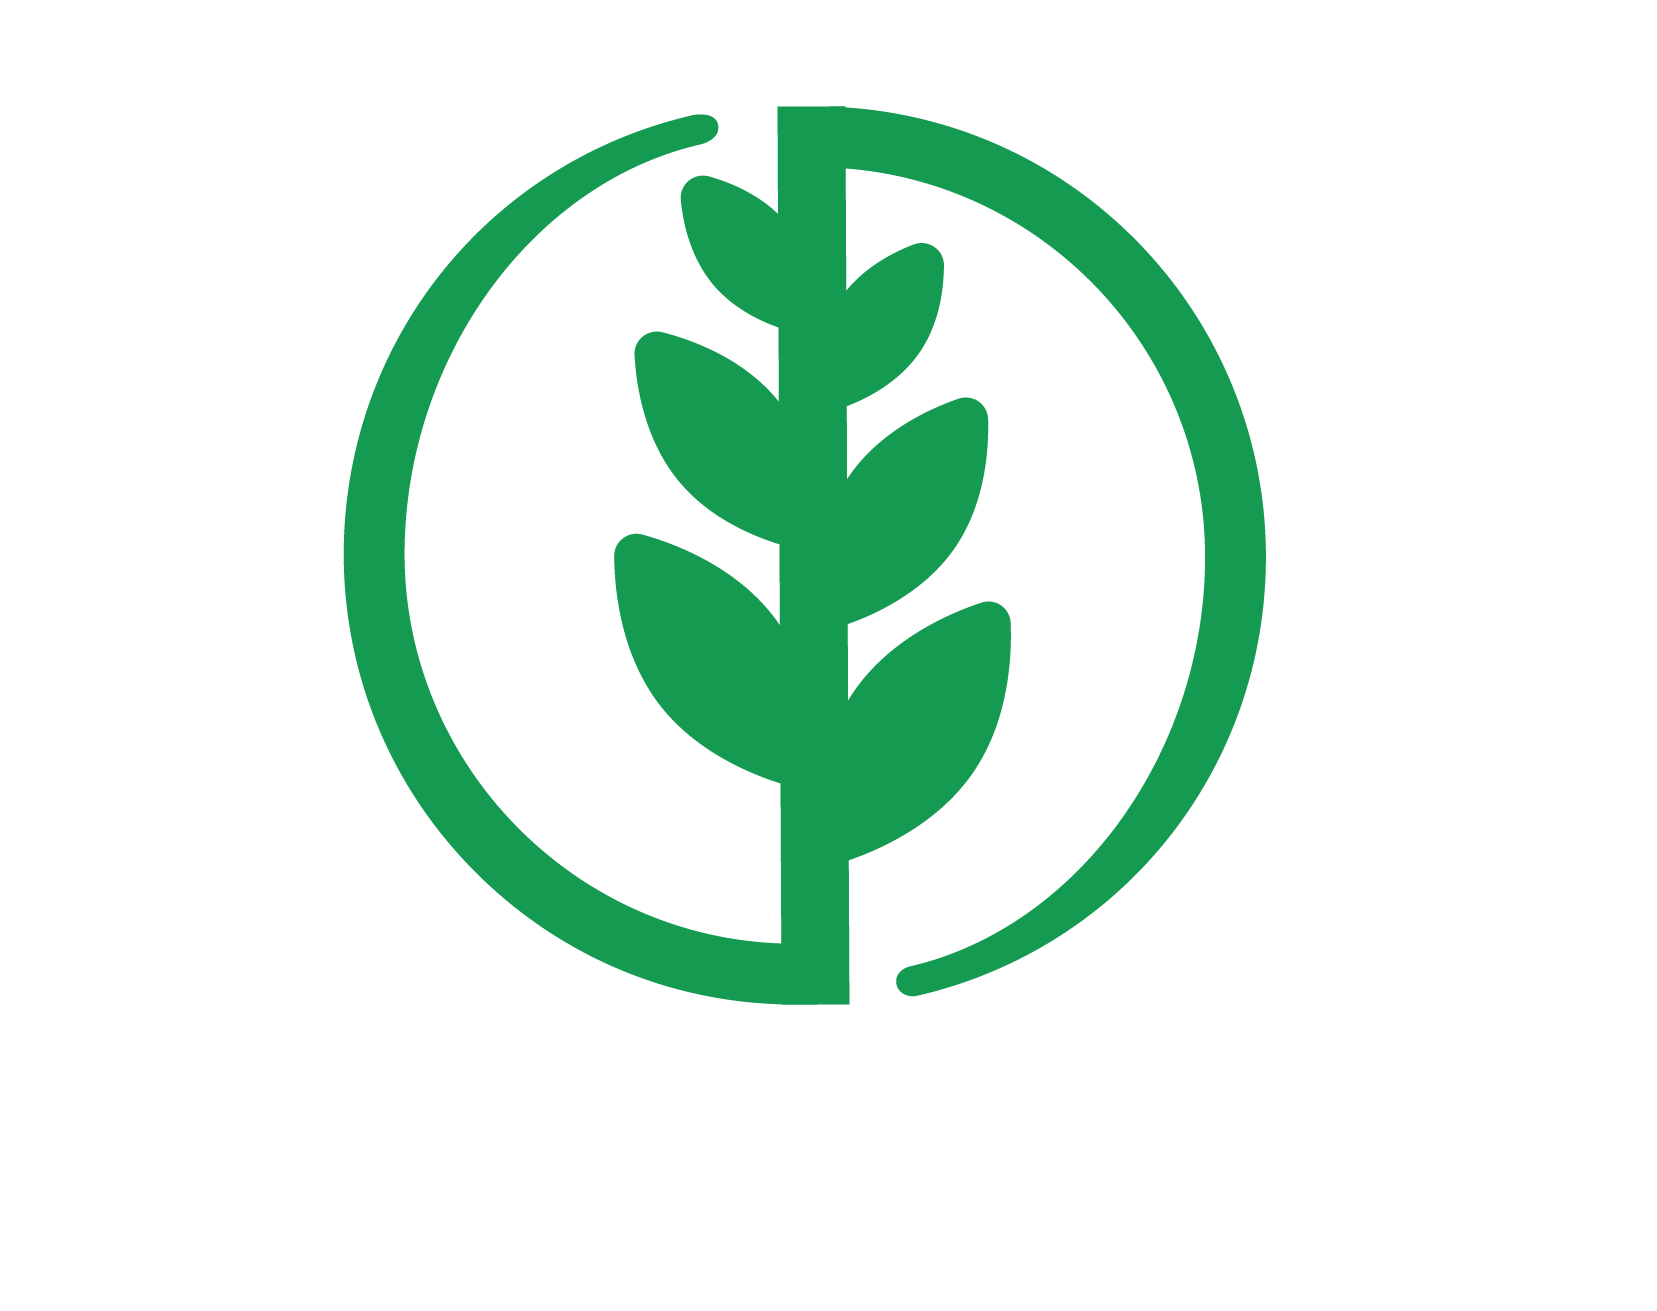 VIN CUPCOFFEE